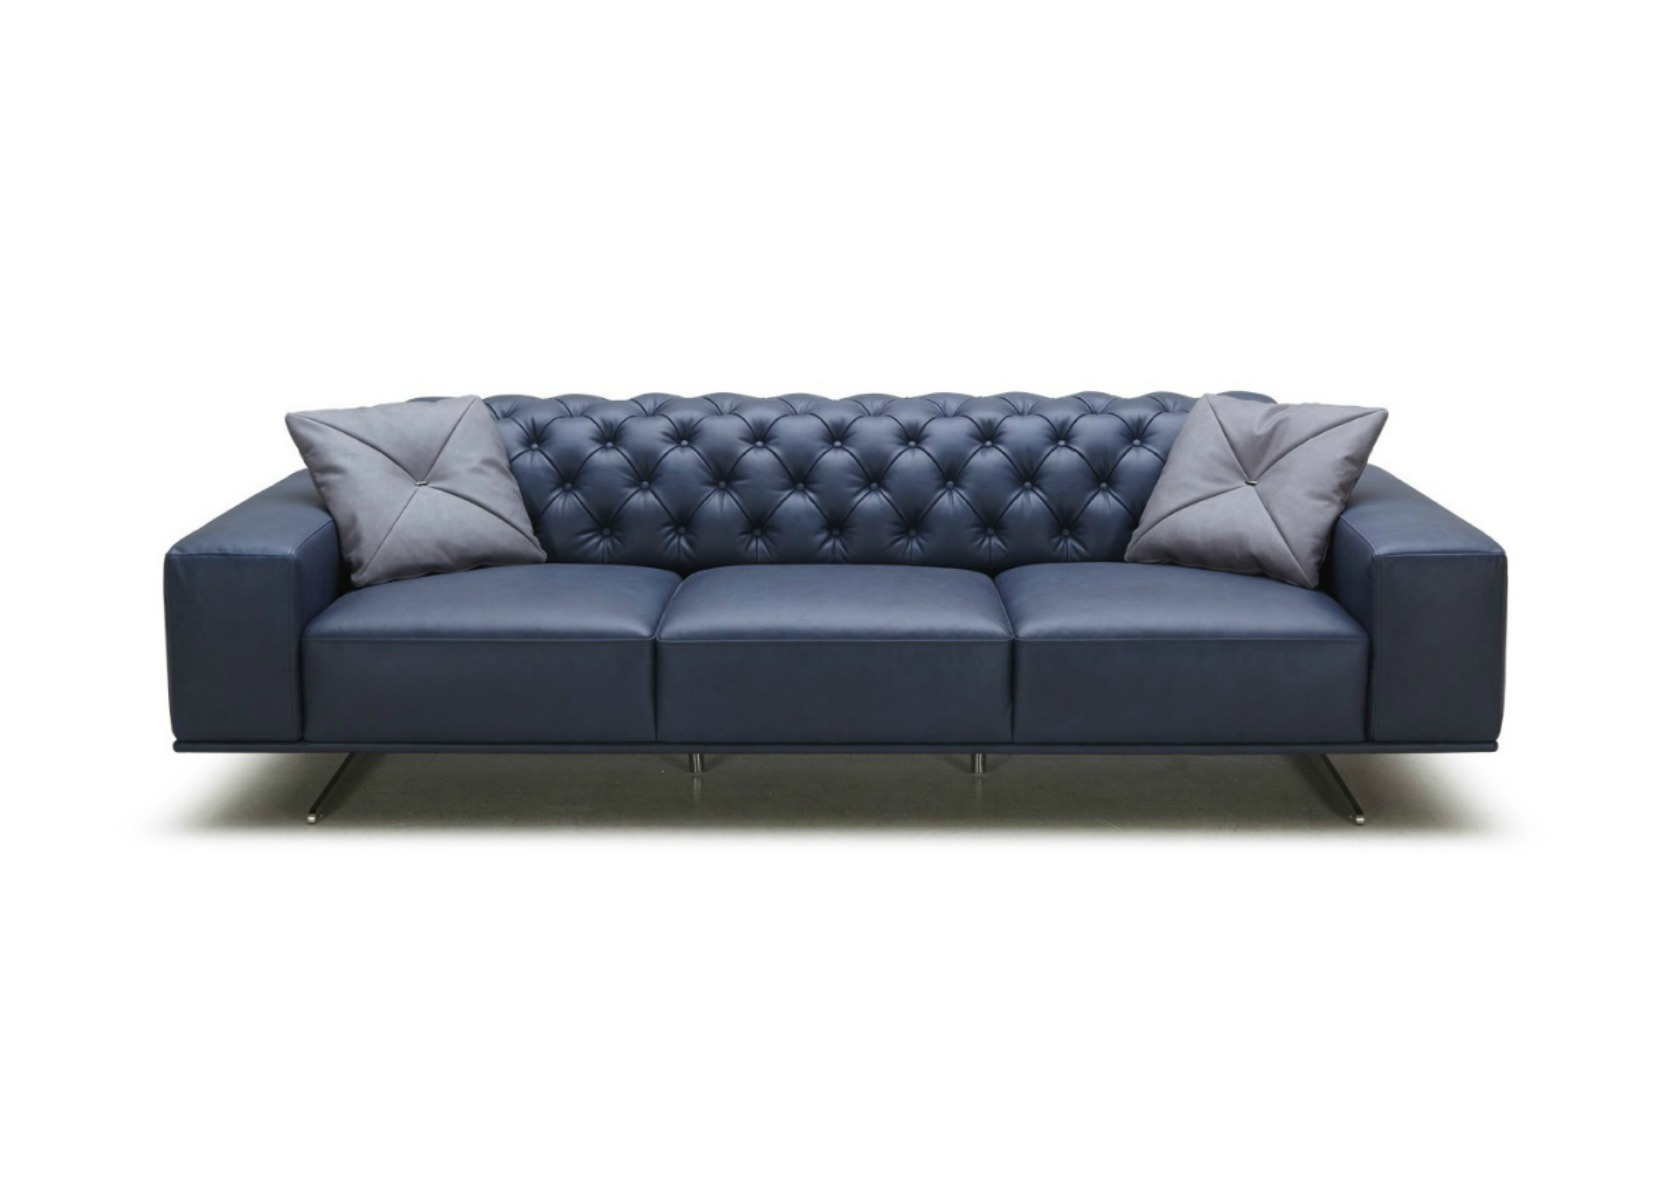 Sloan Sofa In Rich Blue Leather Not Just Brown